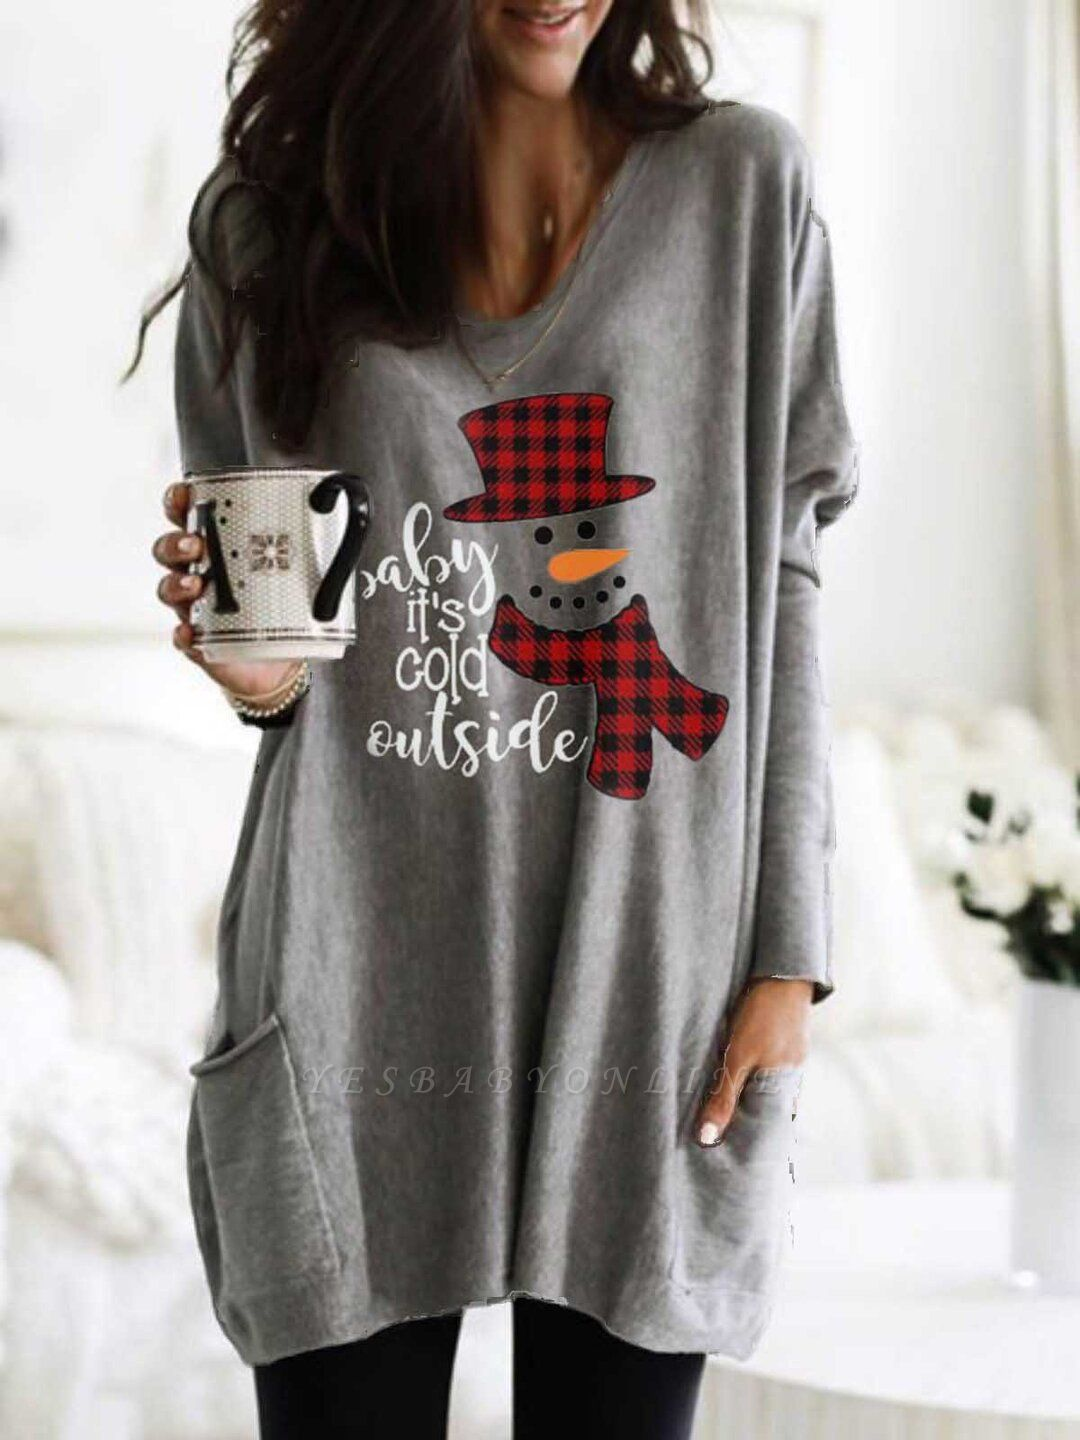 Women's Baby It's Cold Outside Print Long Top